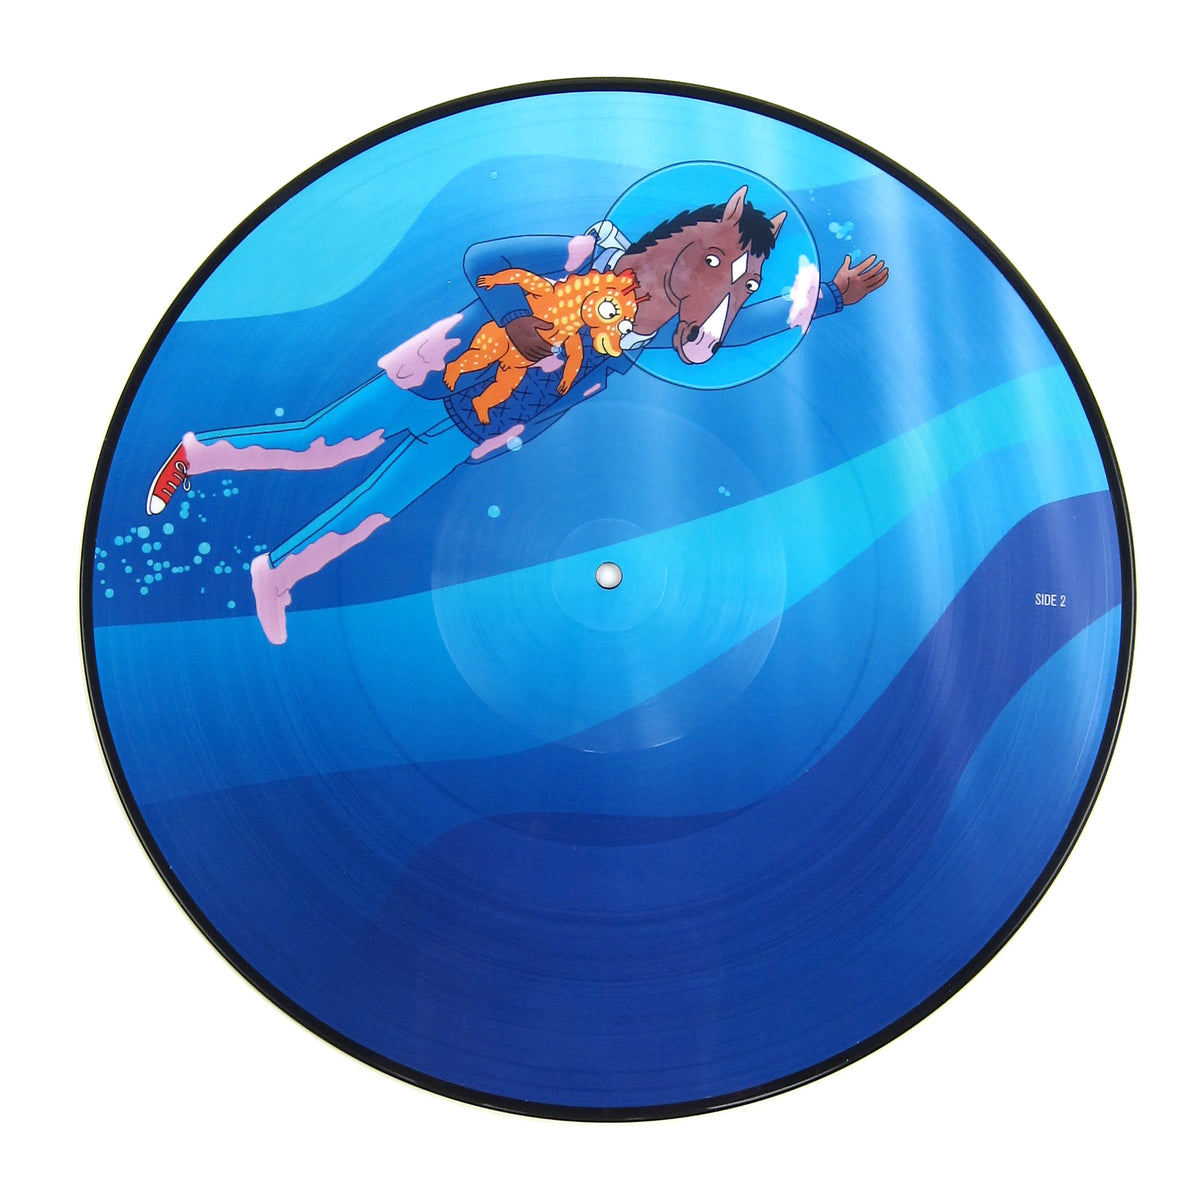 BoJack Horseman: Music From The Netflix Original Series (Pic Disc) Vinyl LP